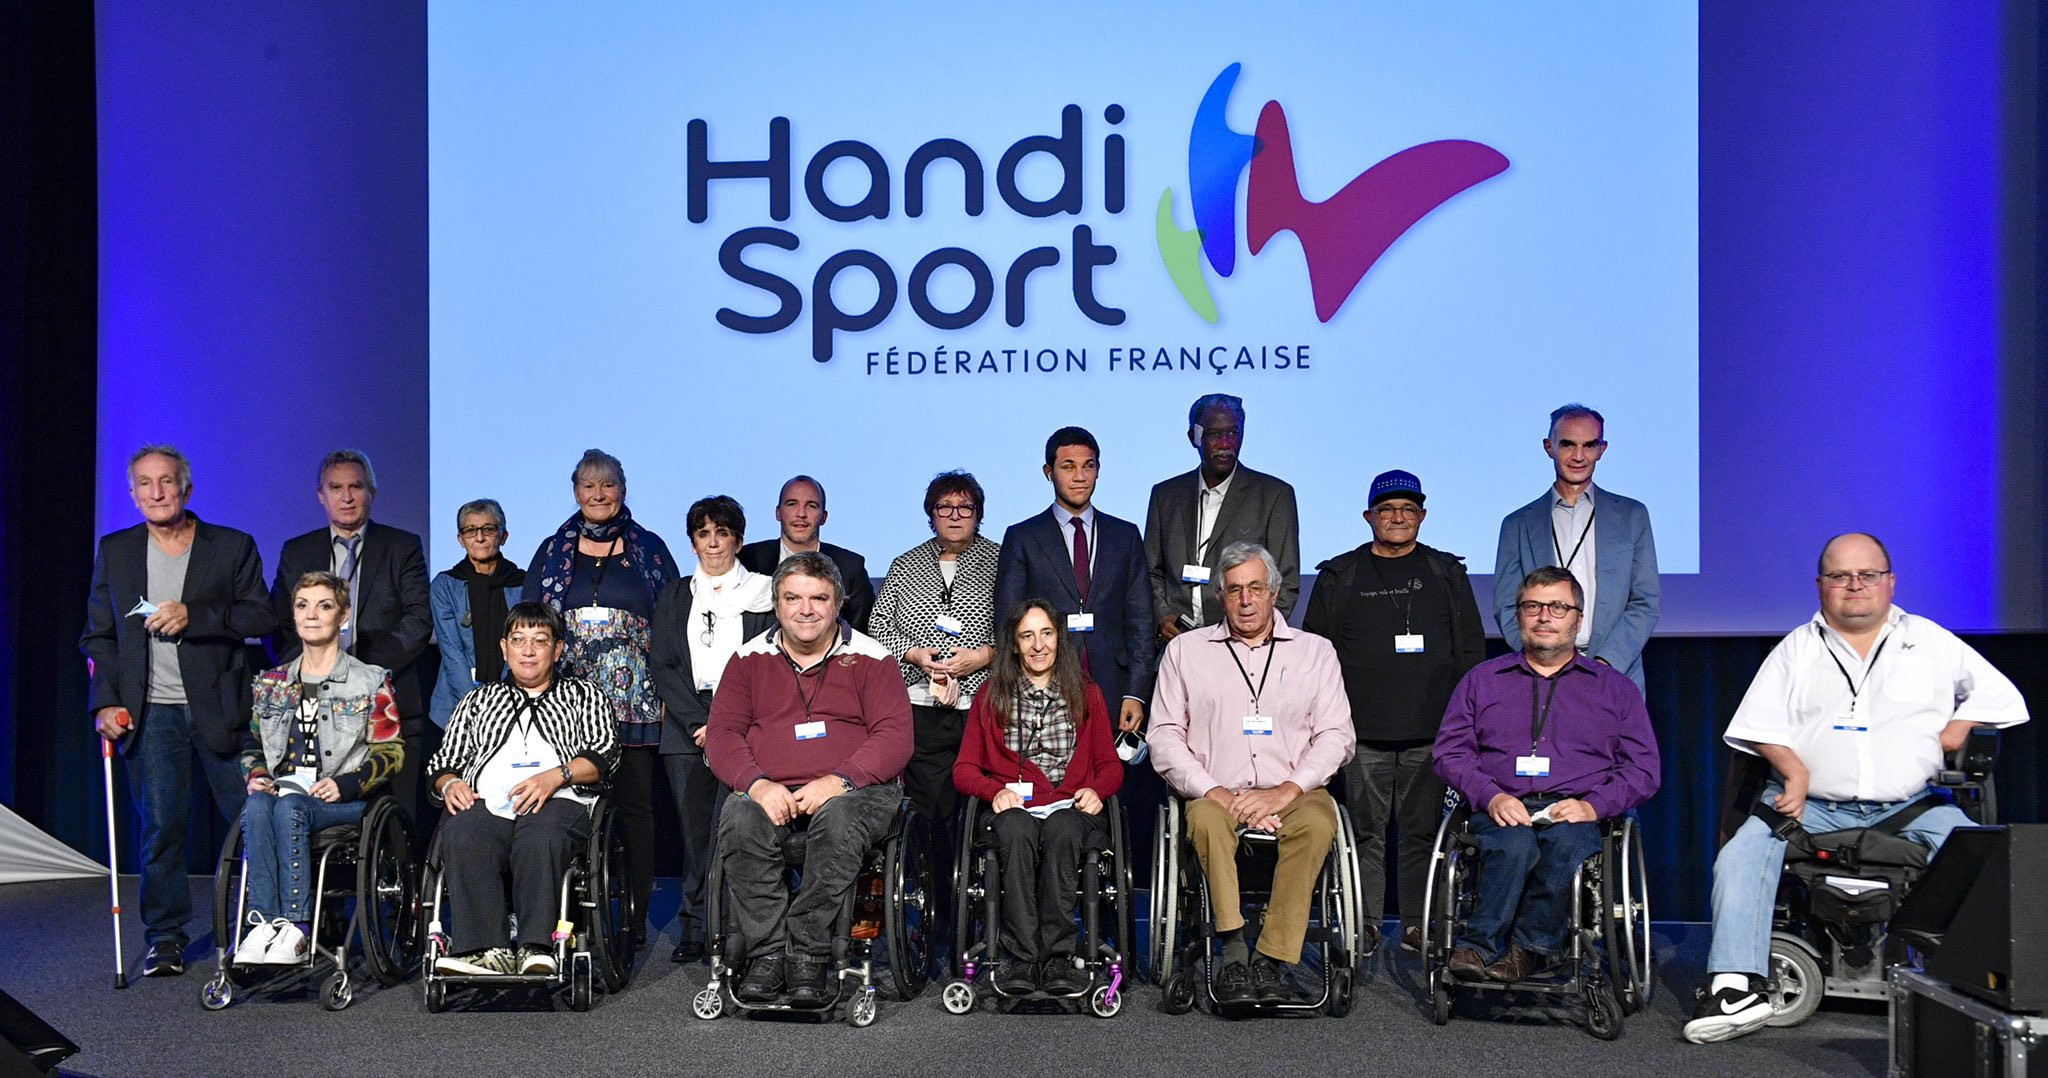 Paralympic medallist Westelynck re-elected French Handisport Federation President through to Paris 2024